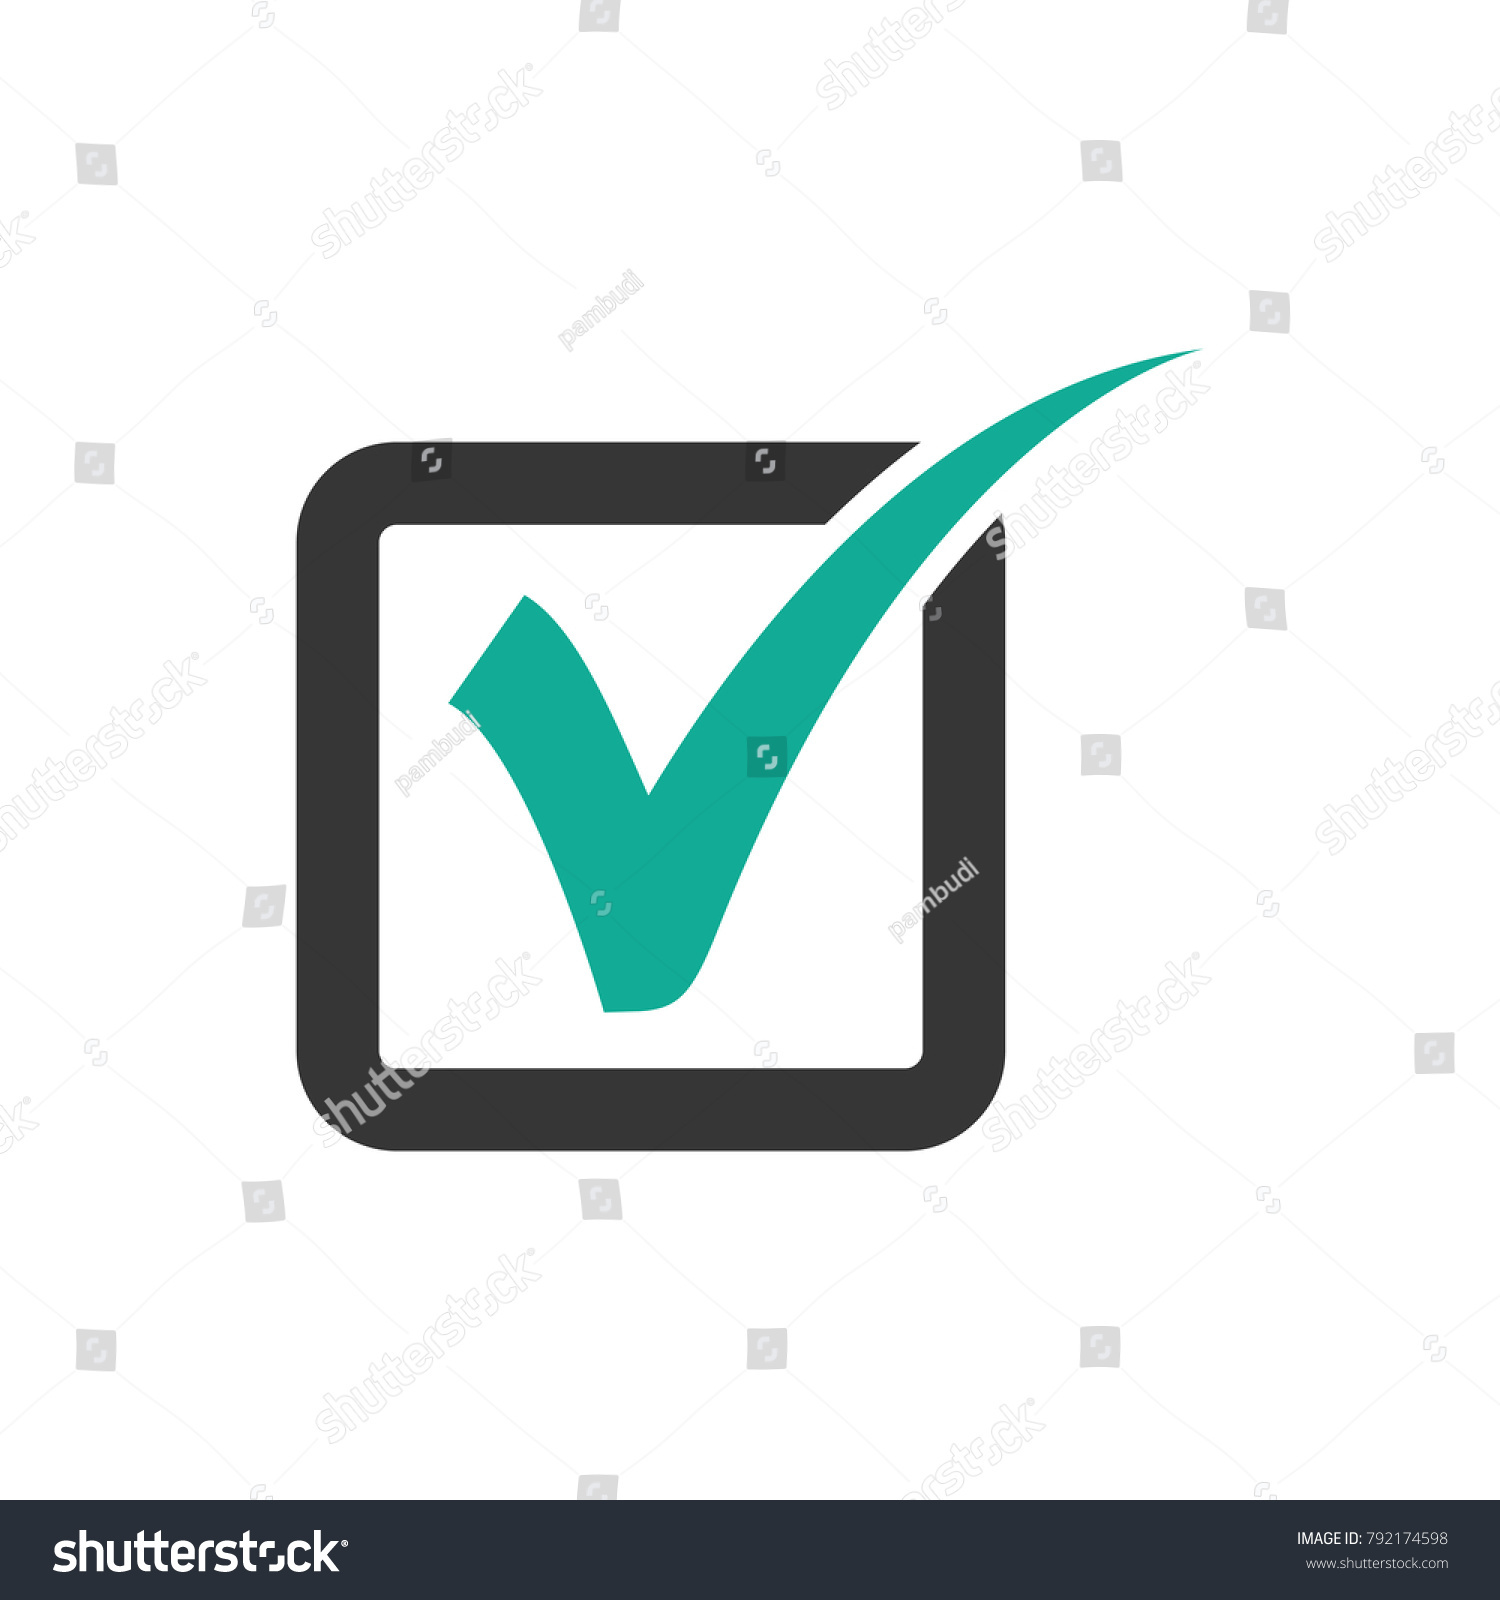 check check mark logo vector check stock vector hd royalty free rh shutterstock com check mark logo silver check mark logo with yellow circle